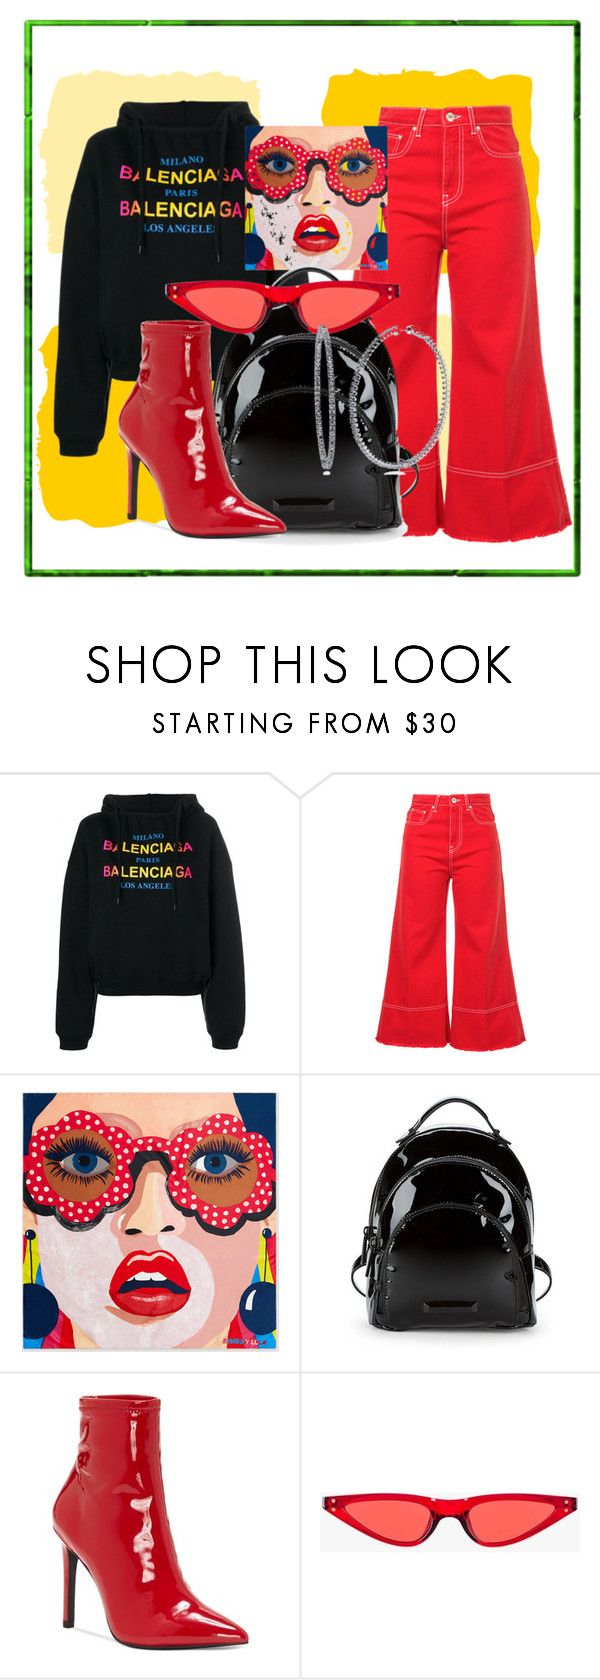 """""""I wanna know"""" by bernotaitegg ❤ liked on Polyvore featuring Balenciaga, MSGM, Kendall + Kylie, Jessica Simpson and BERRICLE"""